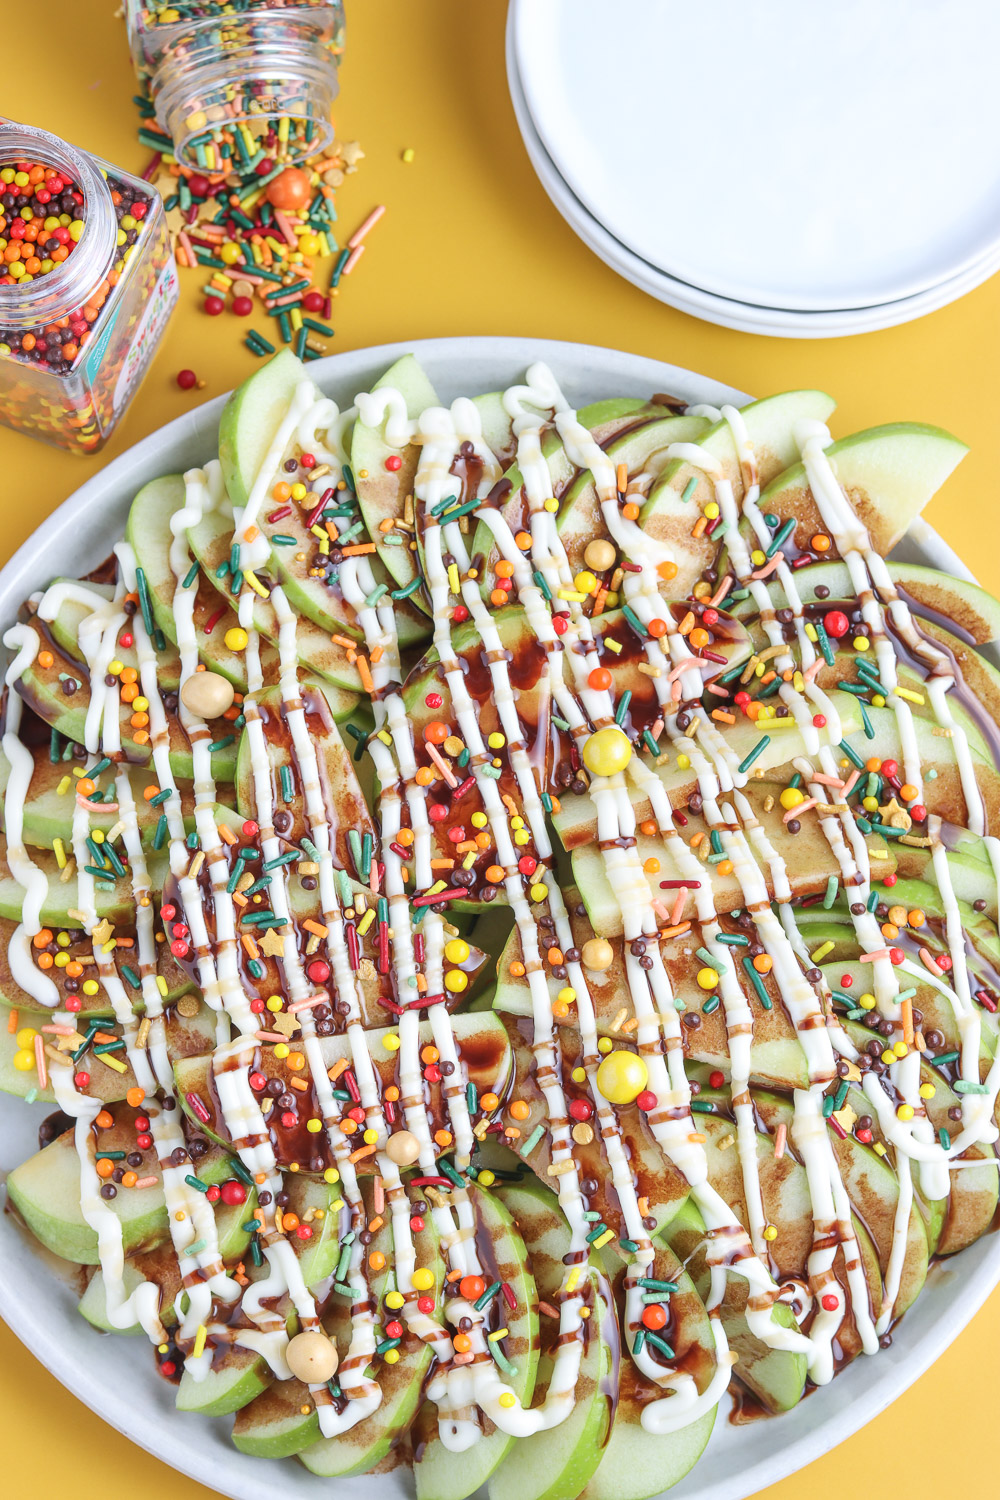 top view of plate full of apple nachos